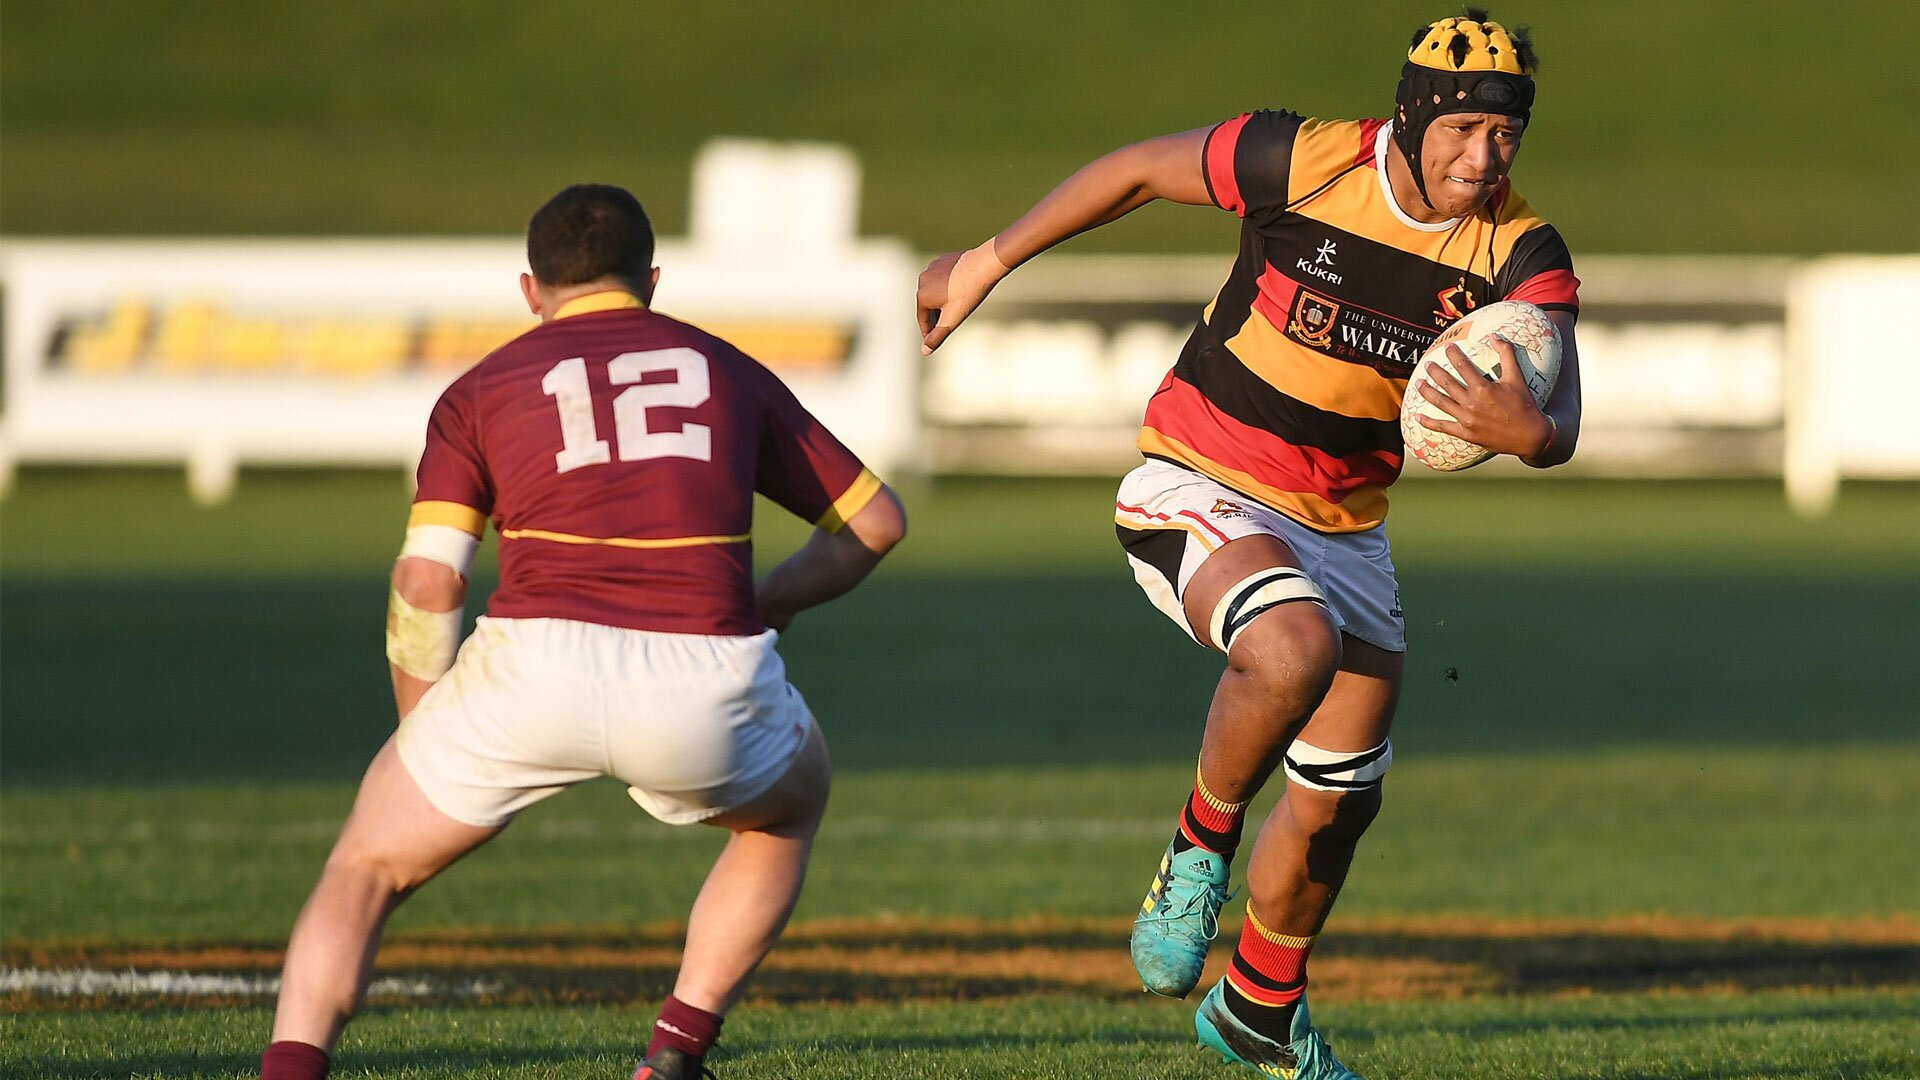 Four U20 stars join Waikato for 2019